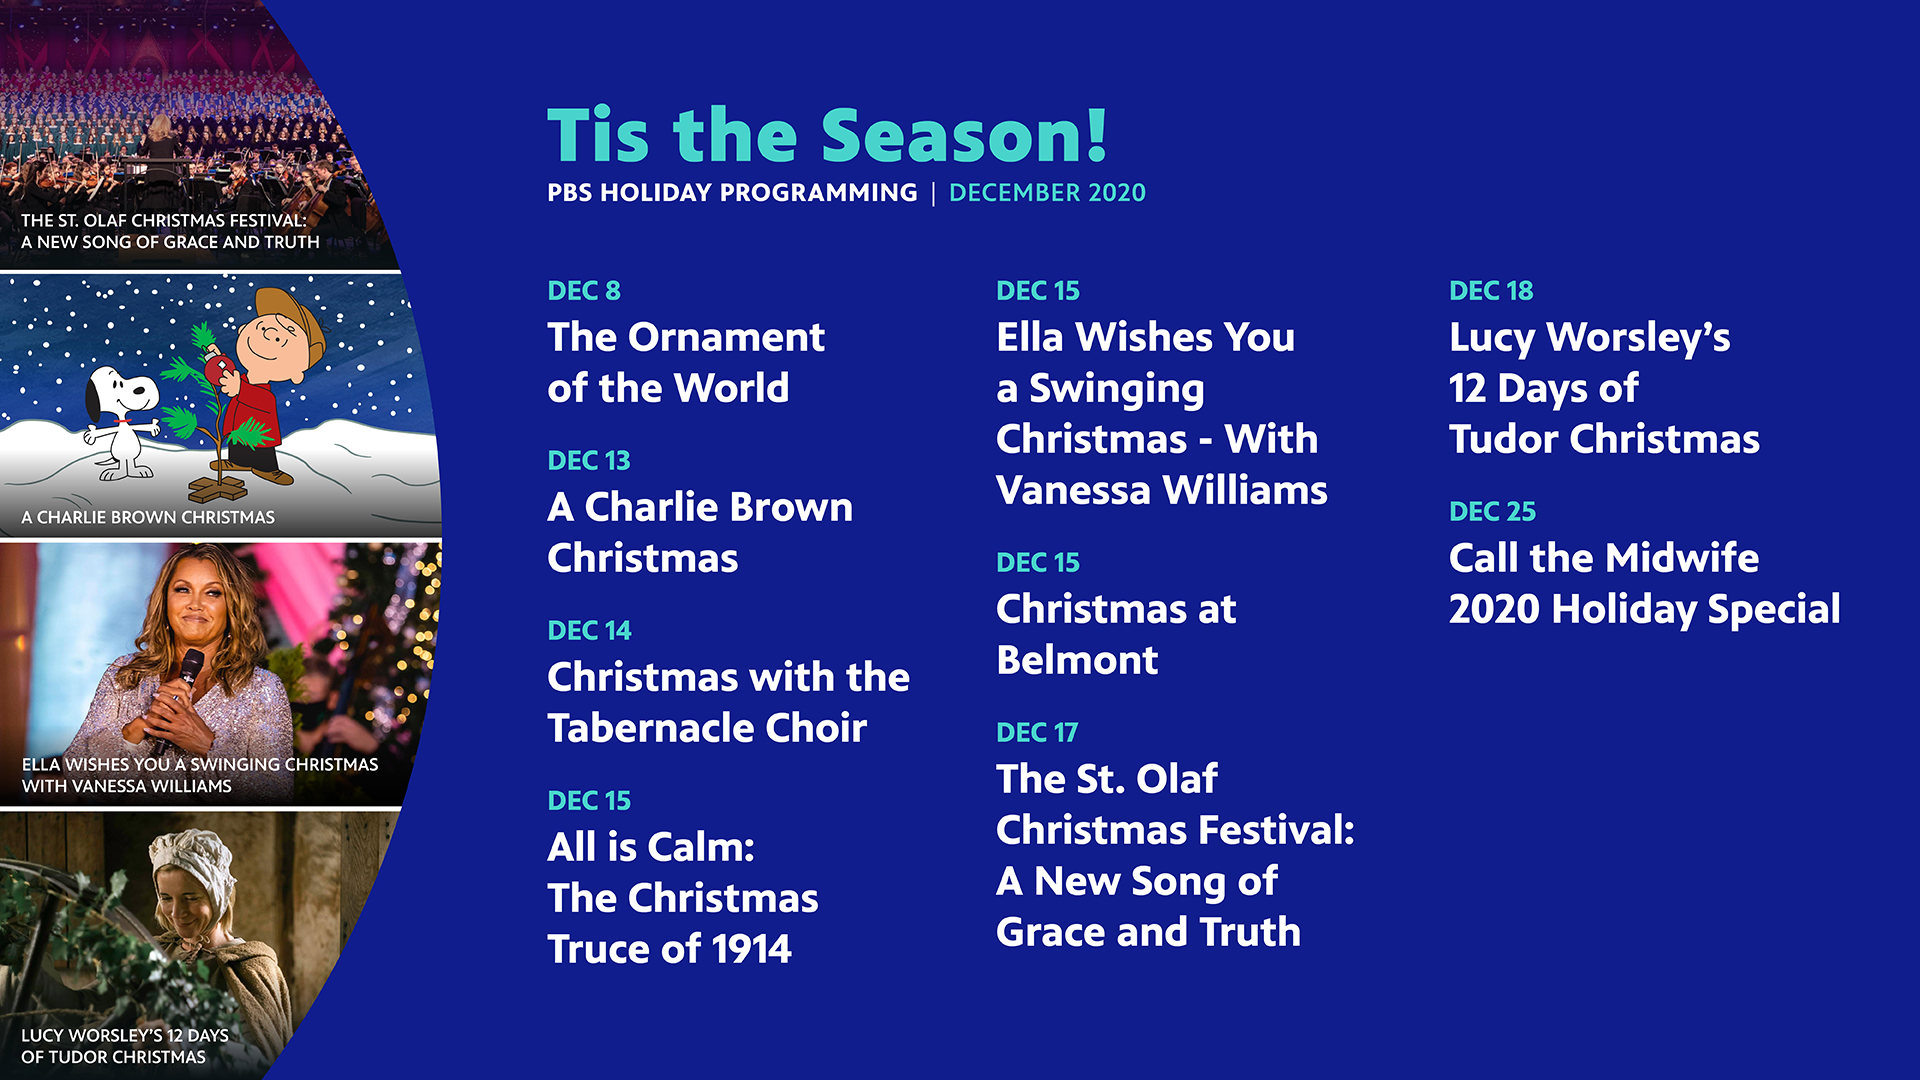 Christmas In Dc Pbs Specials 2021 Tis The Season For Pbs Holiday Programs